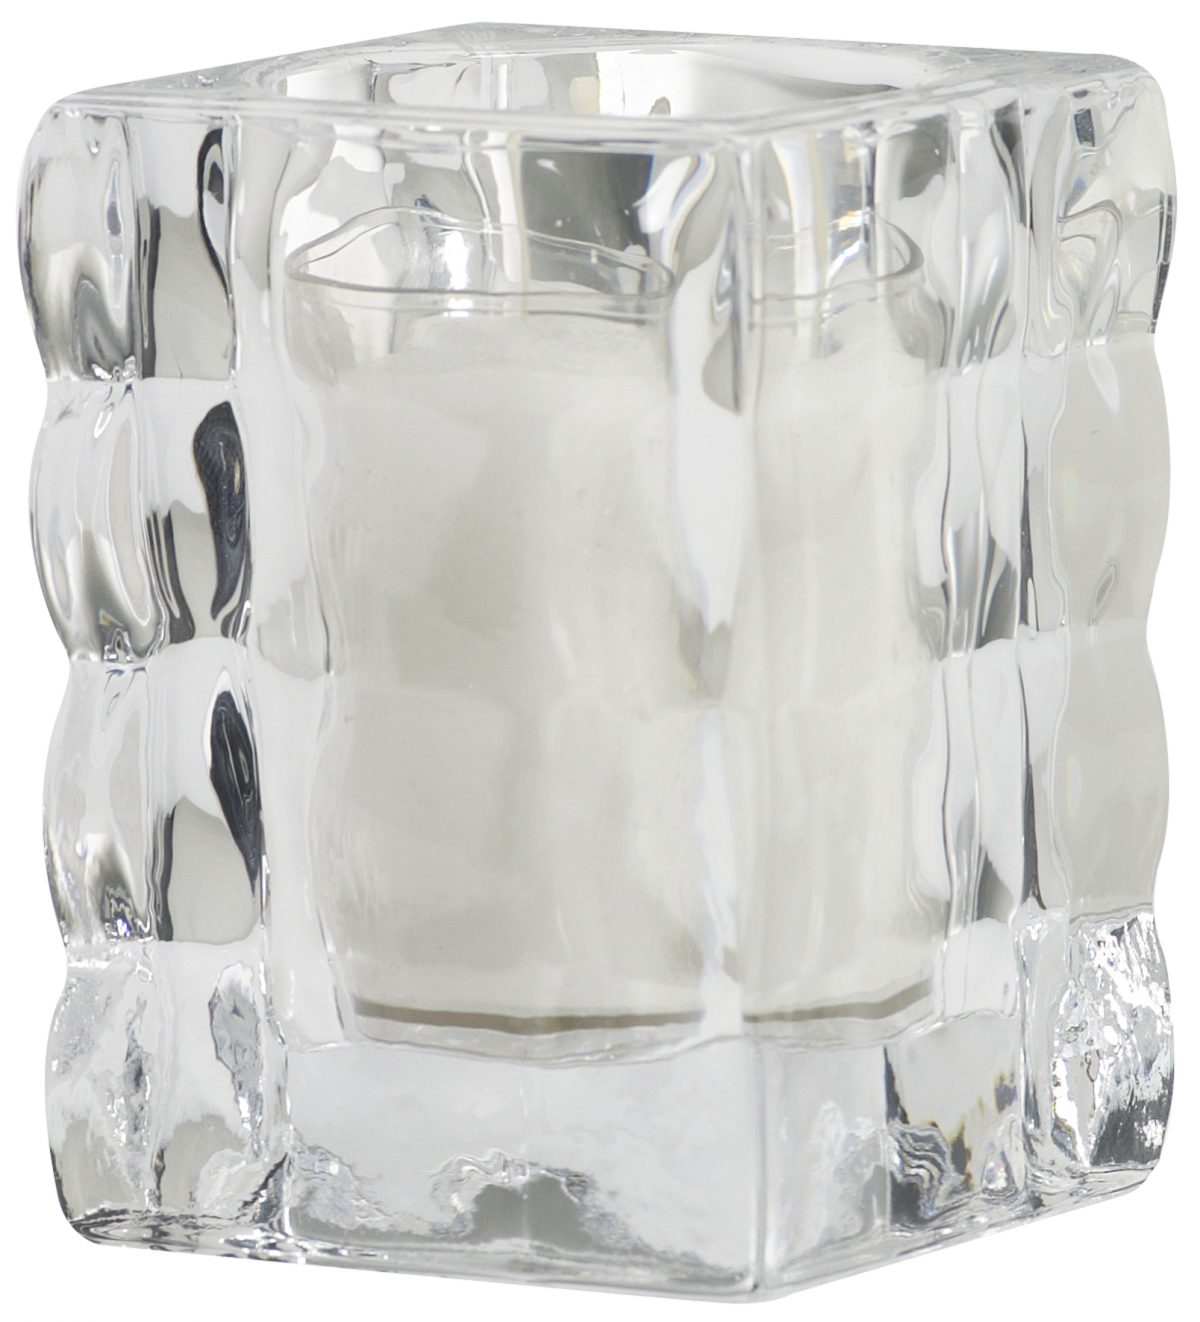 ReLight Holder Cube With Candle